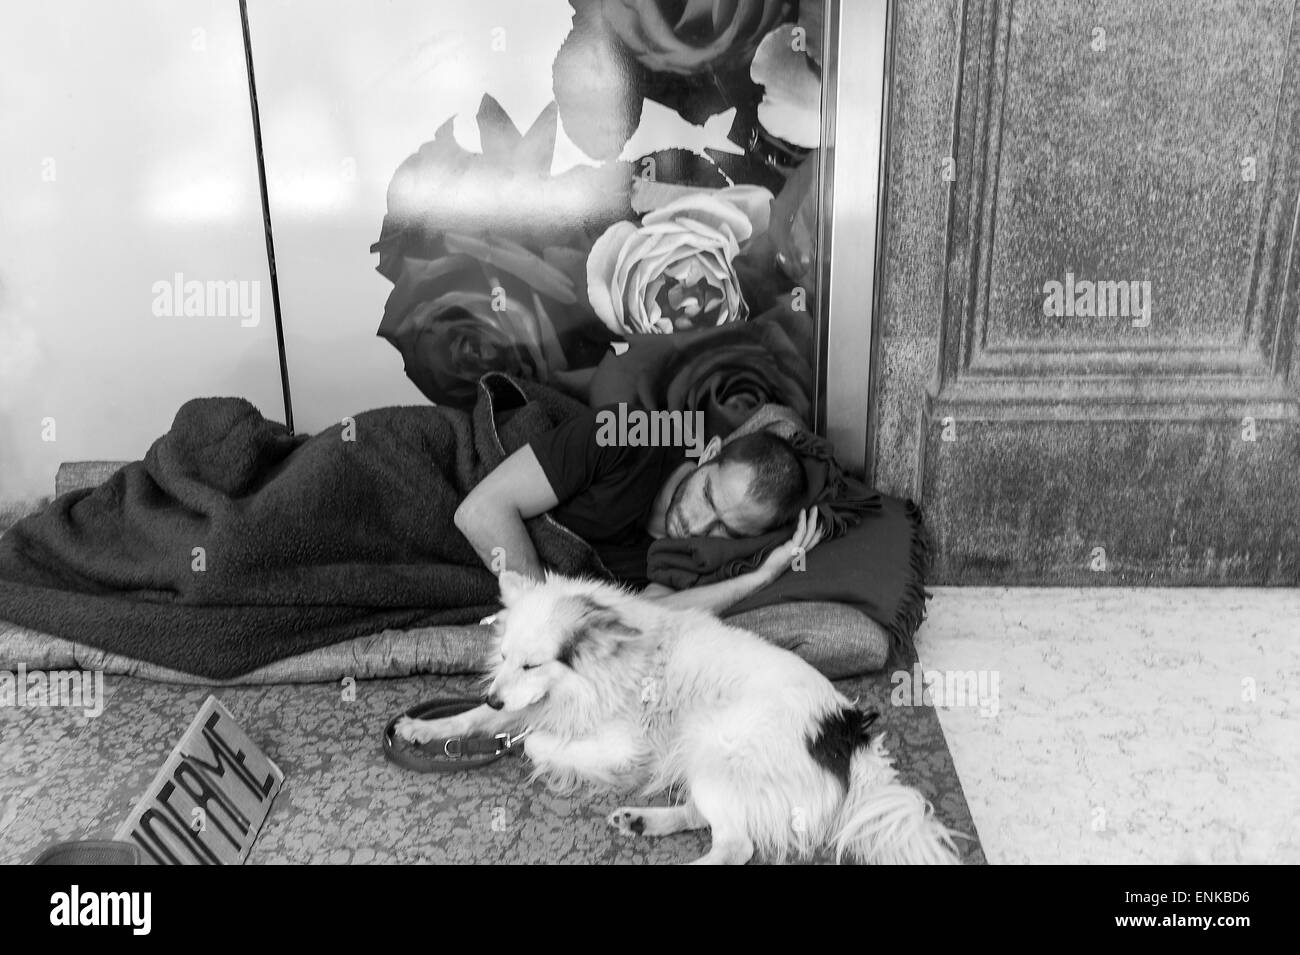 Italy, Milan, a homeless man with his dog, sleeping in front of a shopwindow  in Corso Vittorio Emanuele - Stock Image